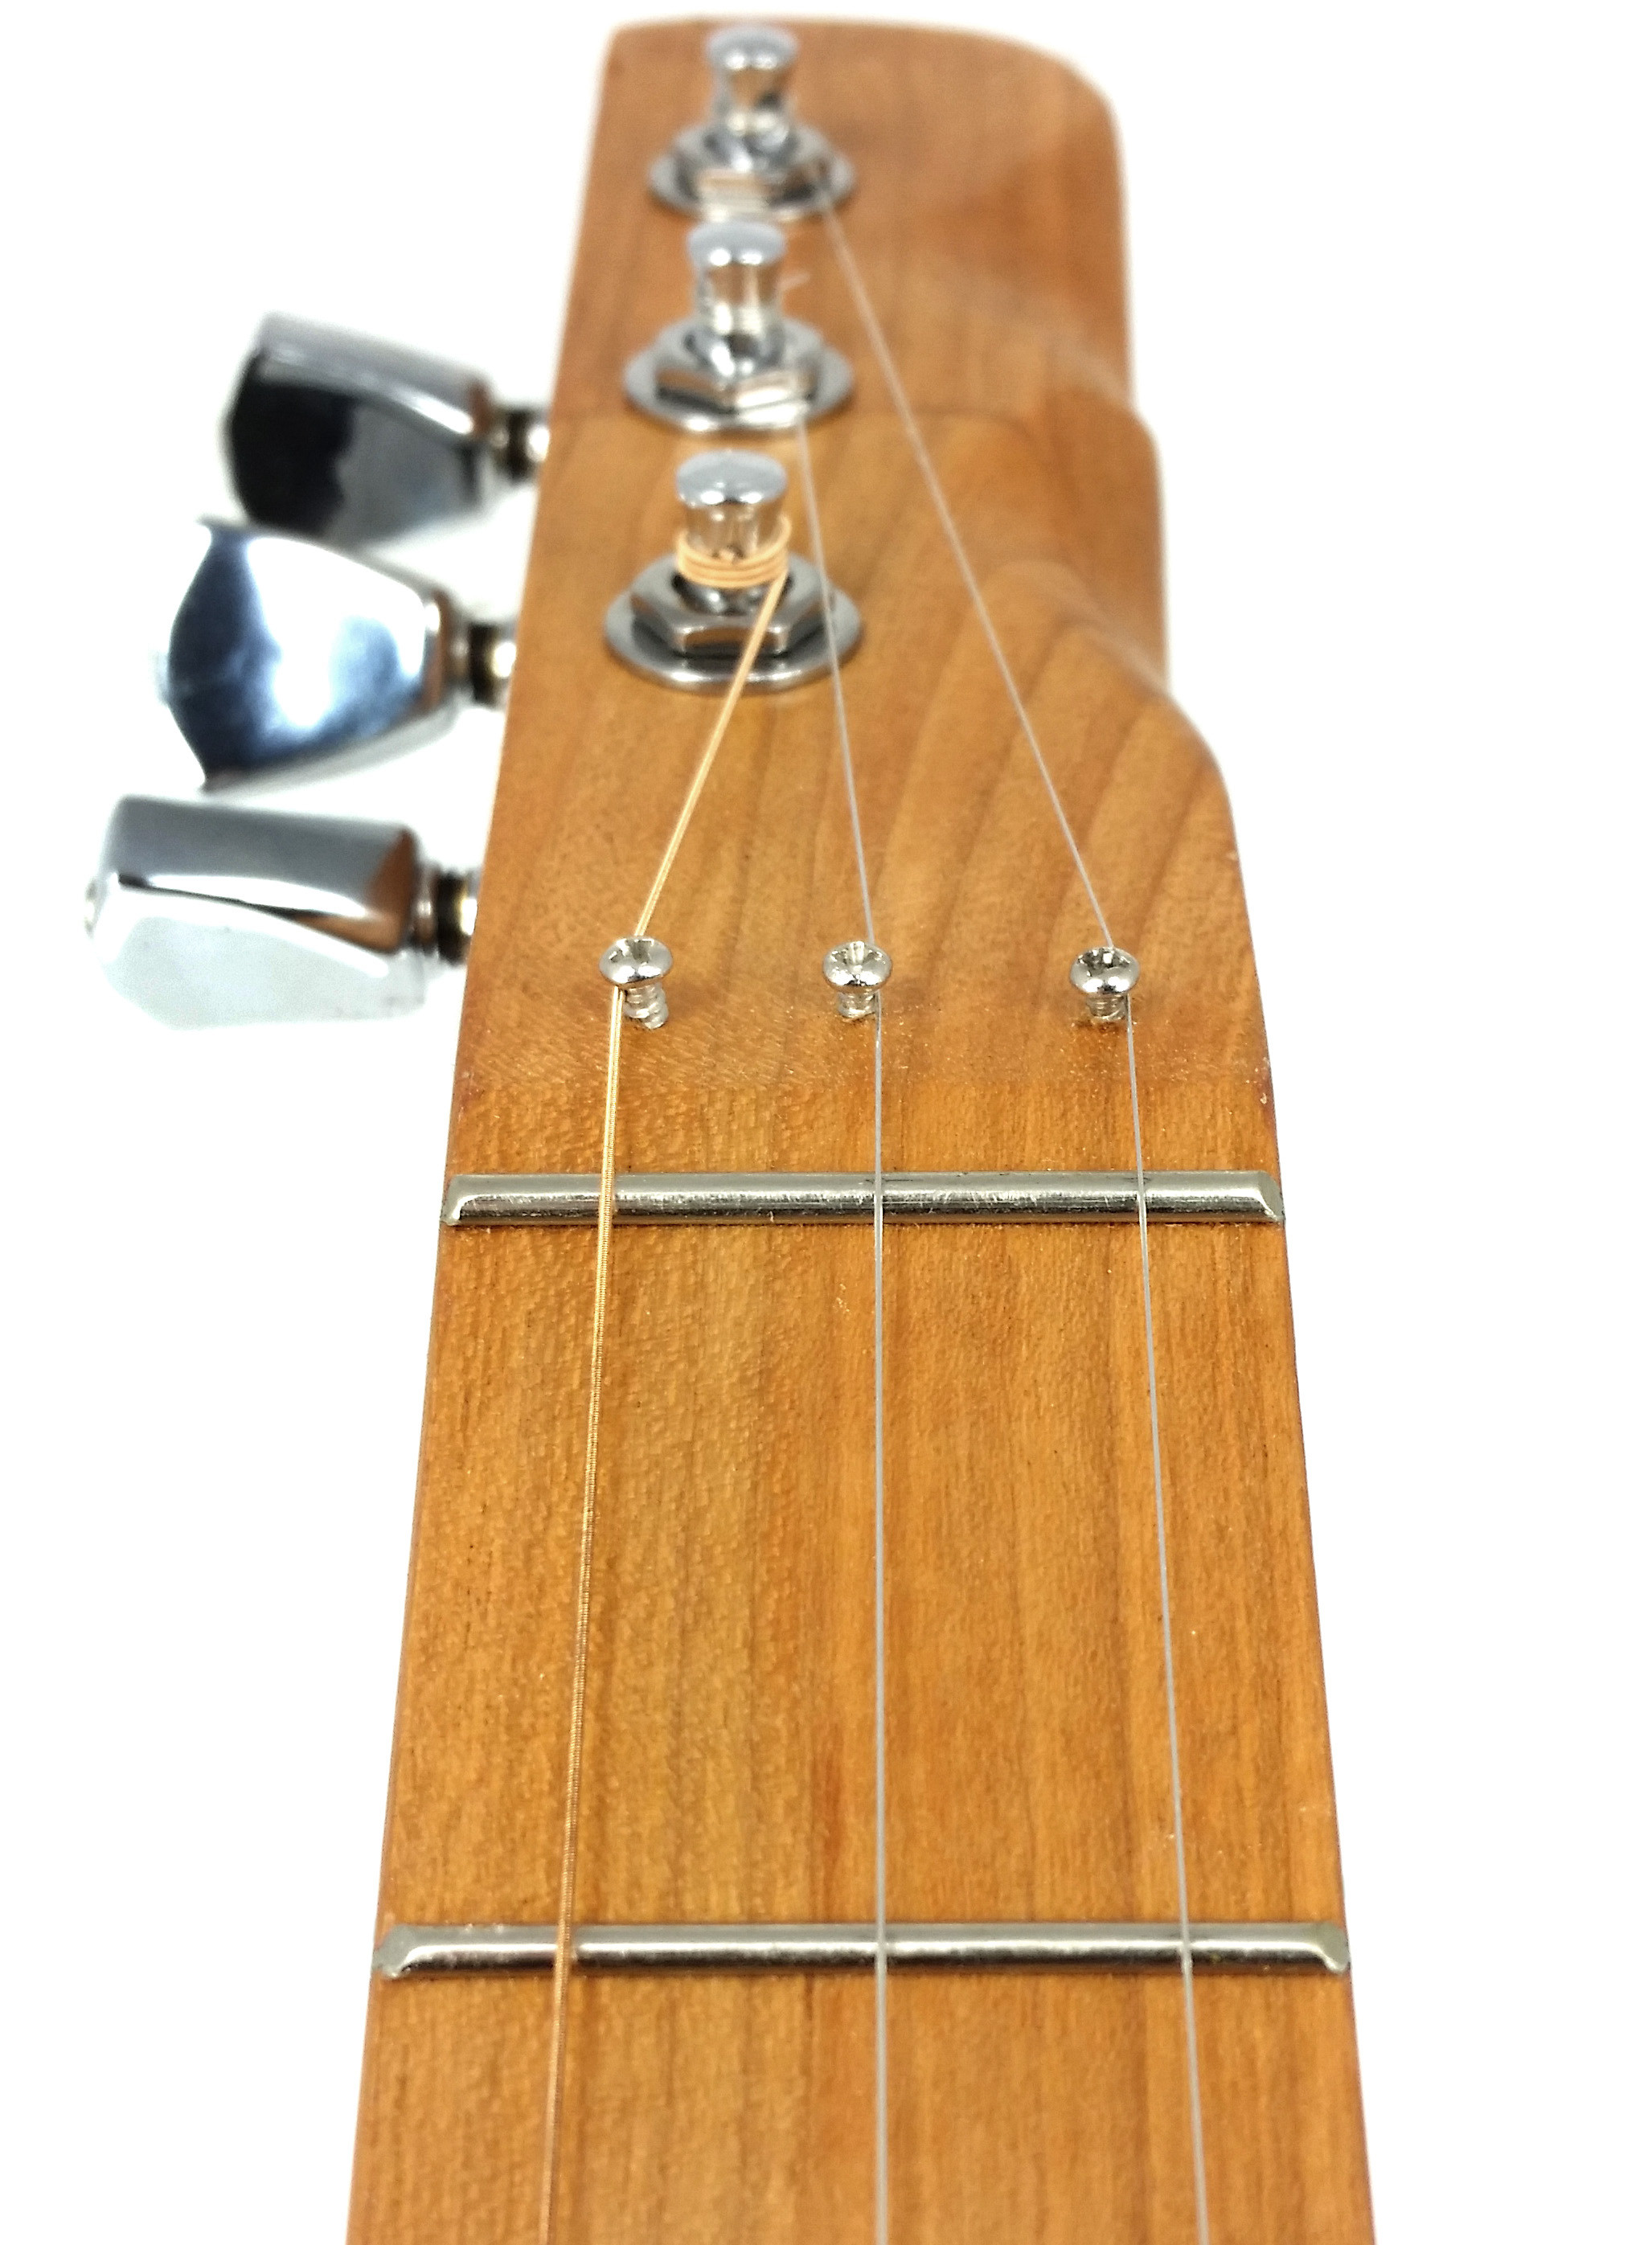 Zero Frets How And Why To Use Them On Cigar Box Guitars Wiring A Single Two Wire Humbucker Nation Here Is Another Angle Of Fret Installed Guitar This